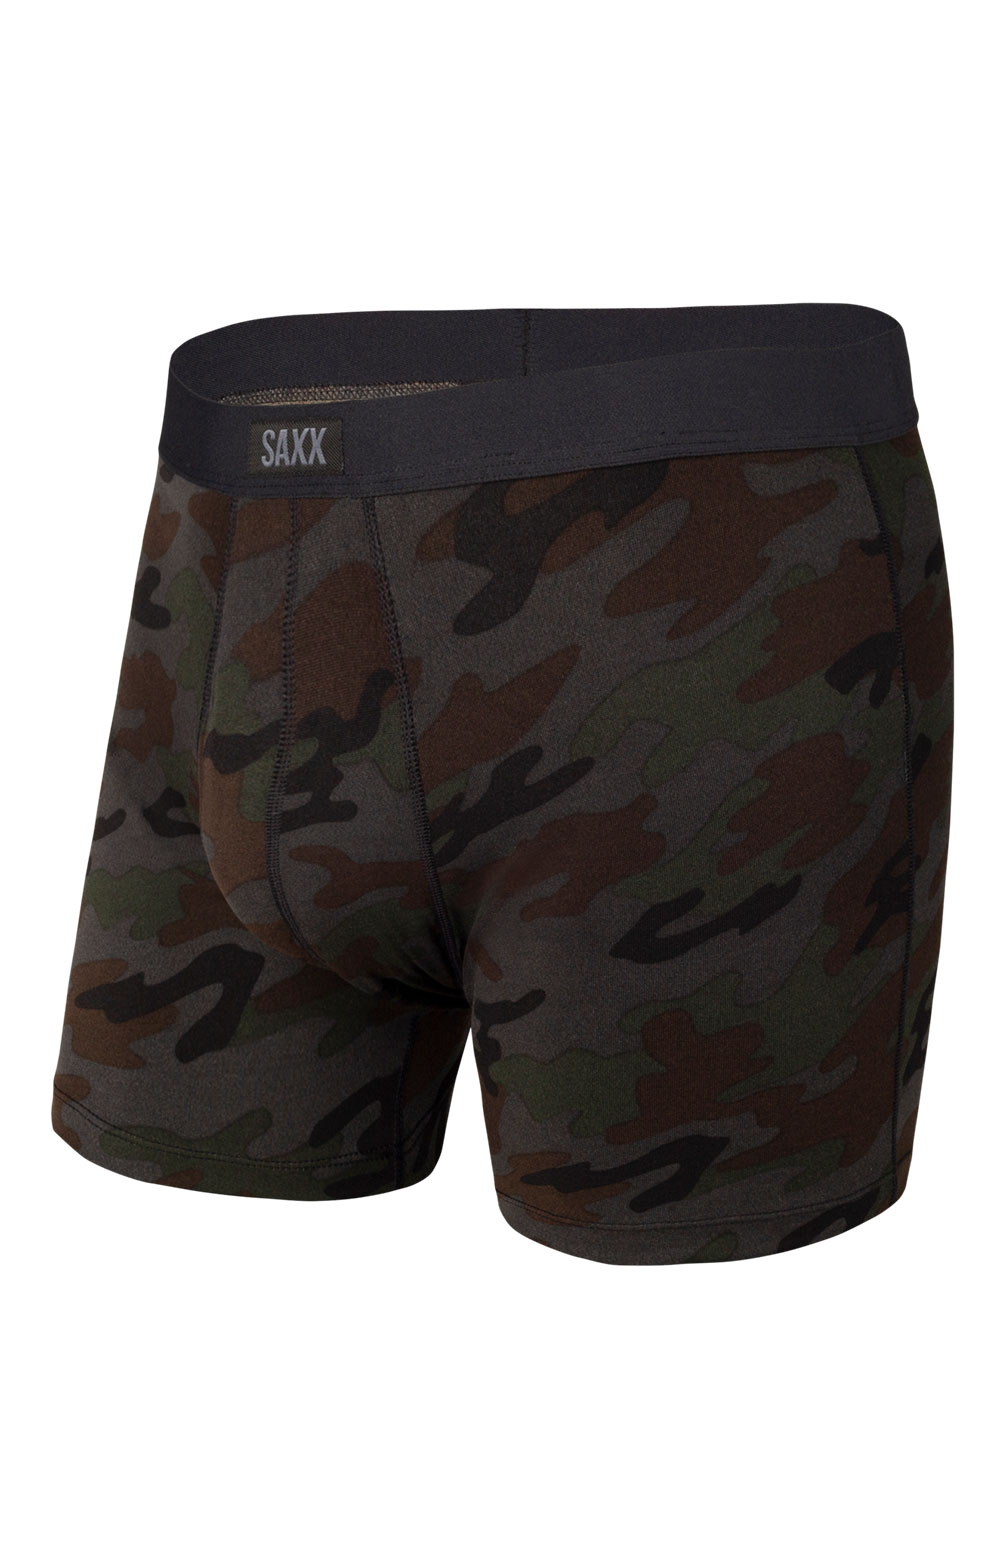 Daytripper Boxer Brief Fly - Black Ops Camo